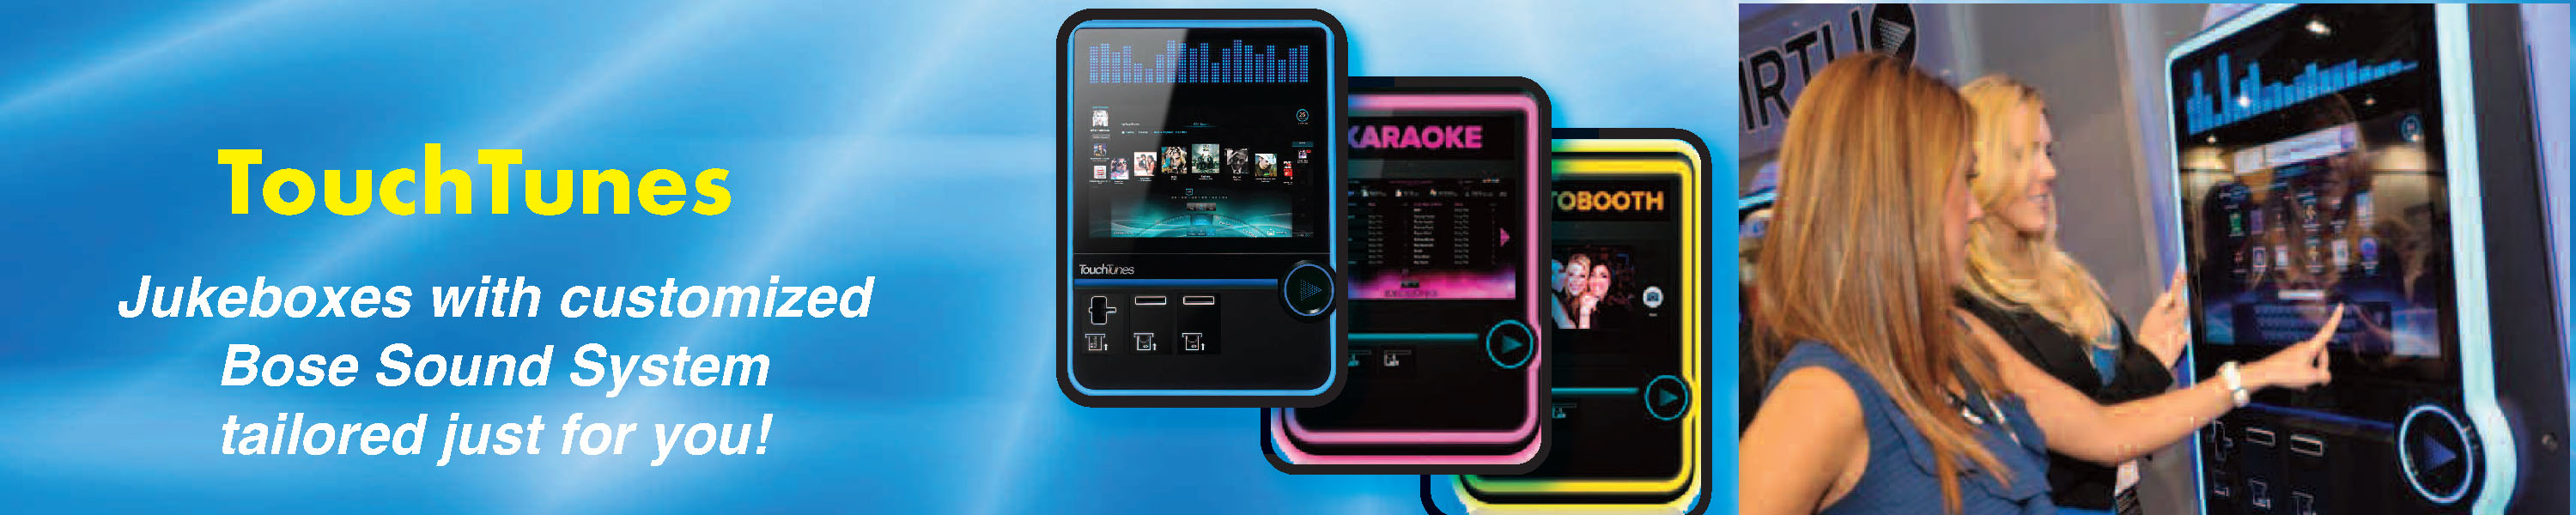 touchtune jukebox feature image